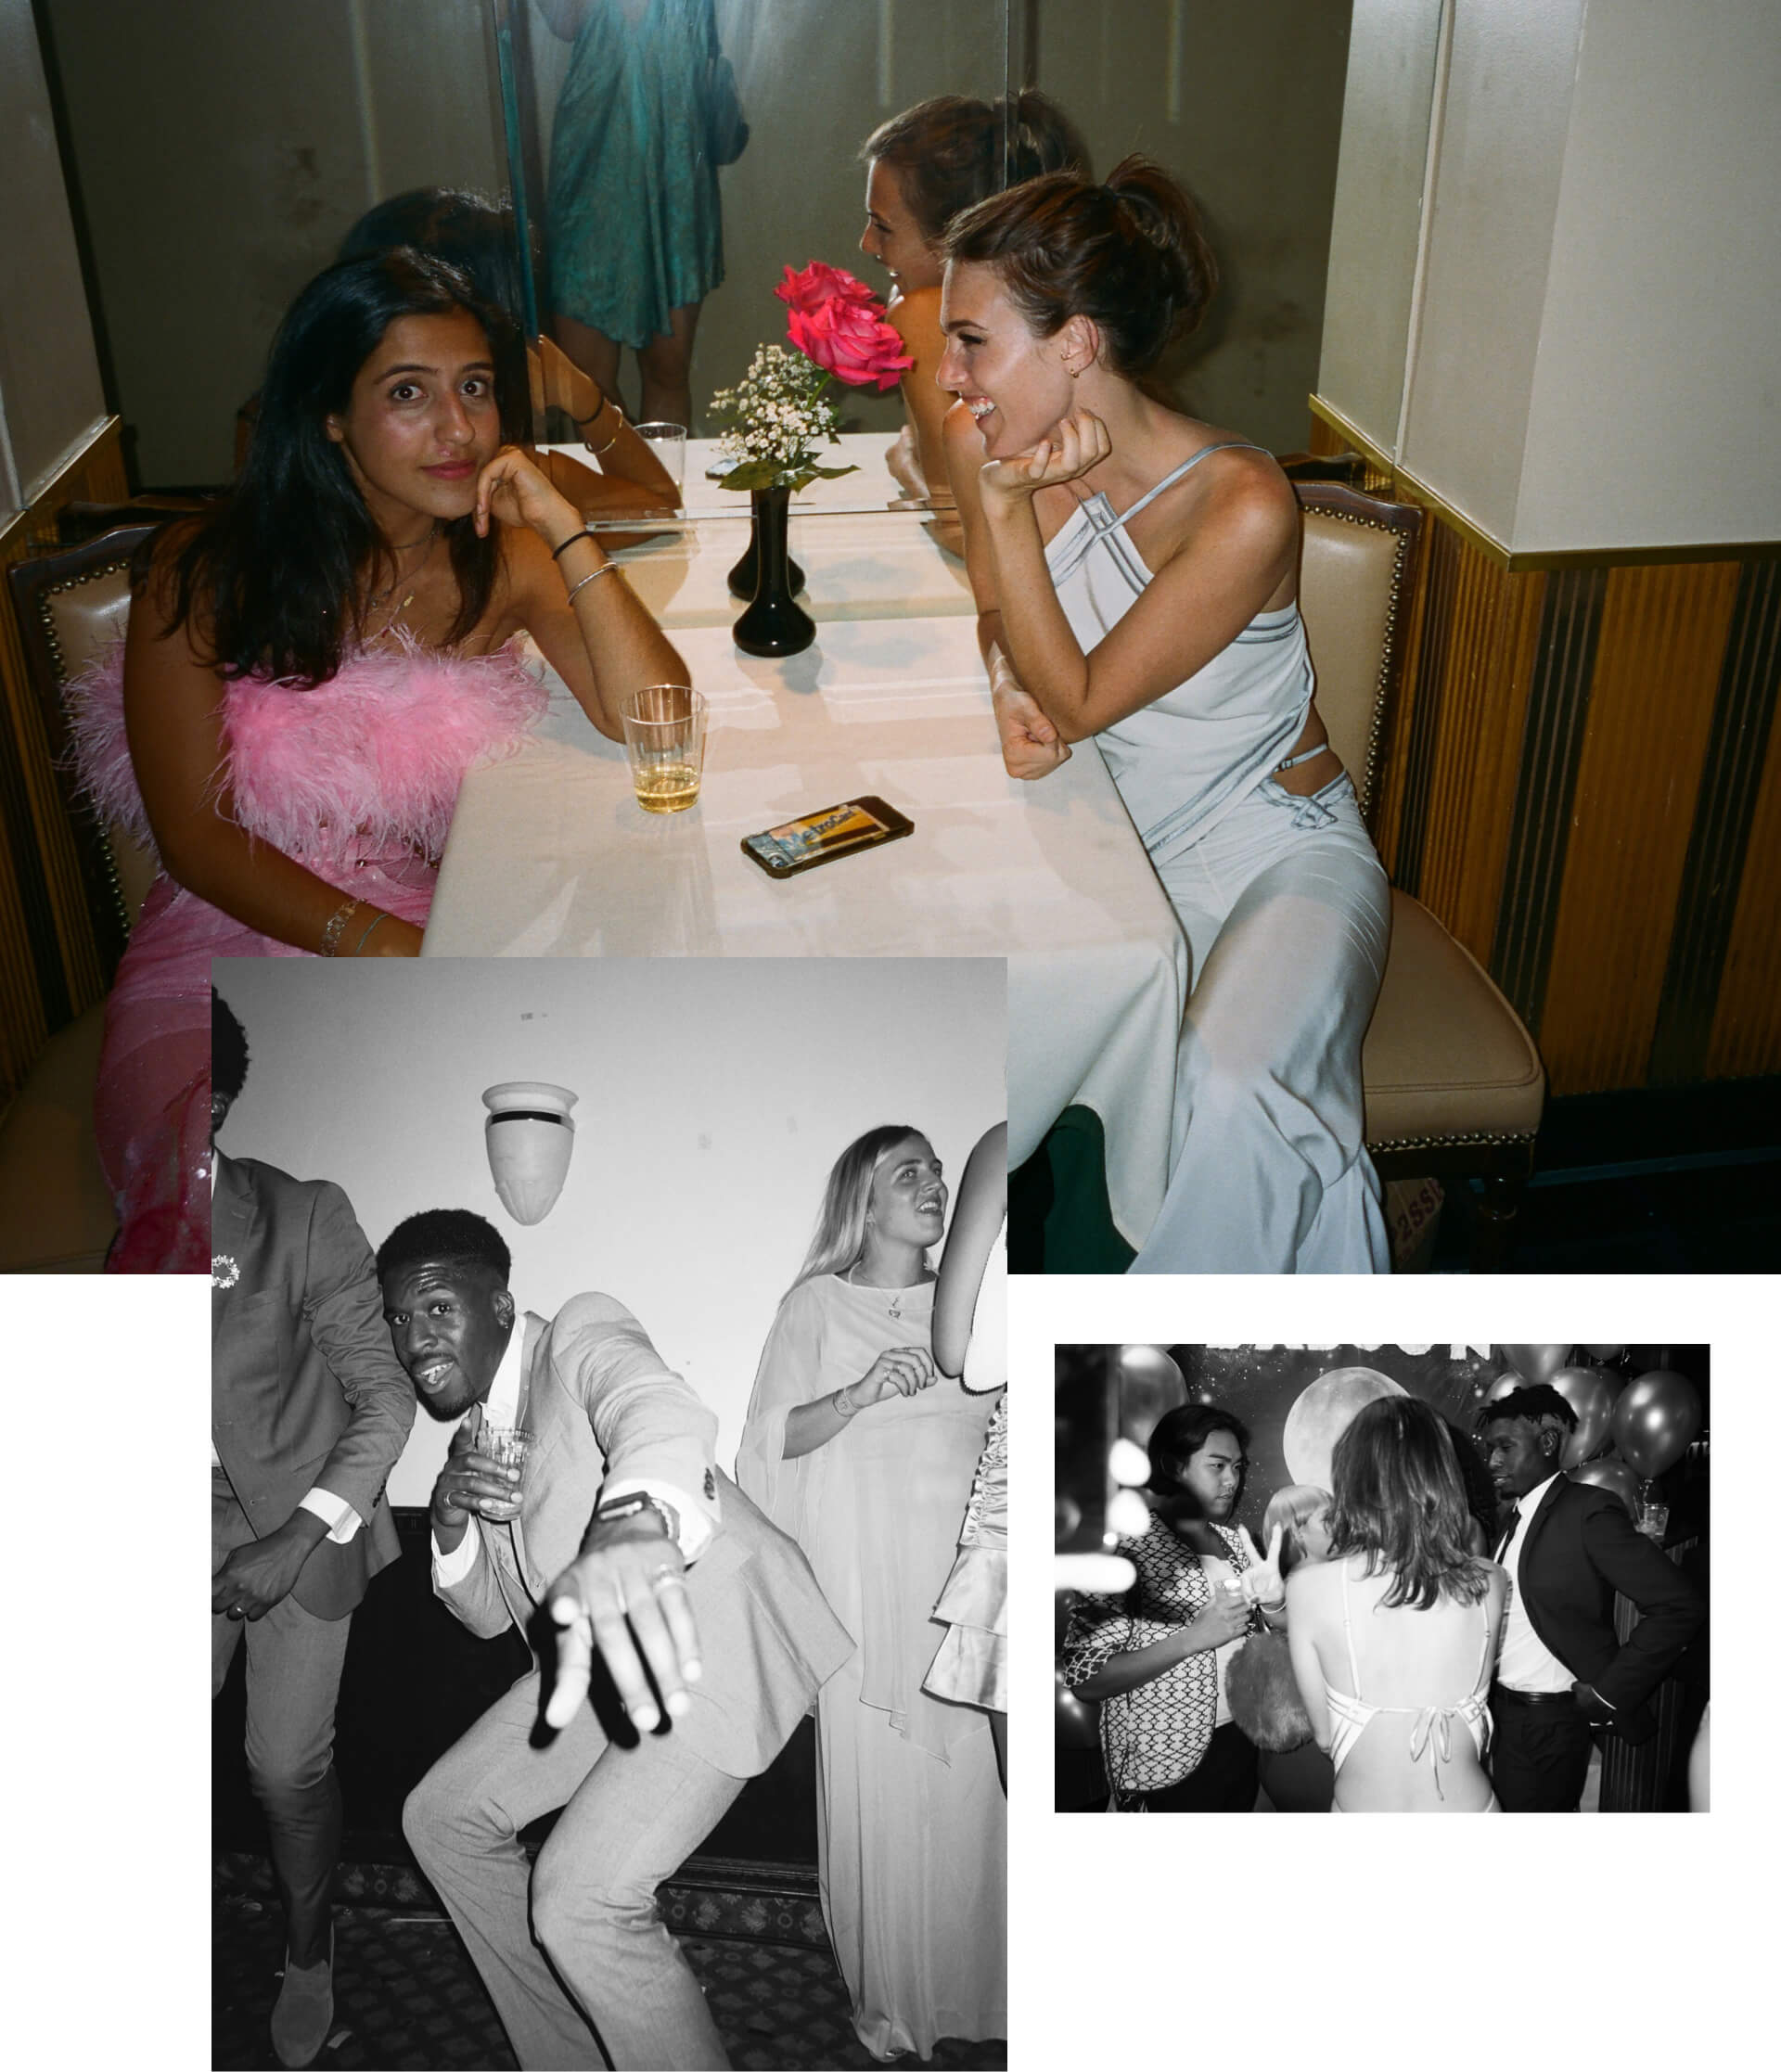 edge to edge spacer collage of people enjoying BABOON prom